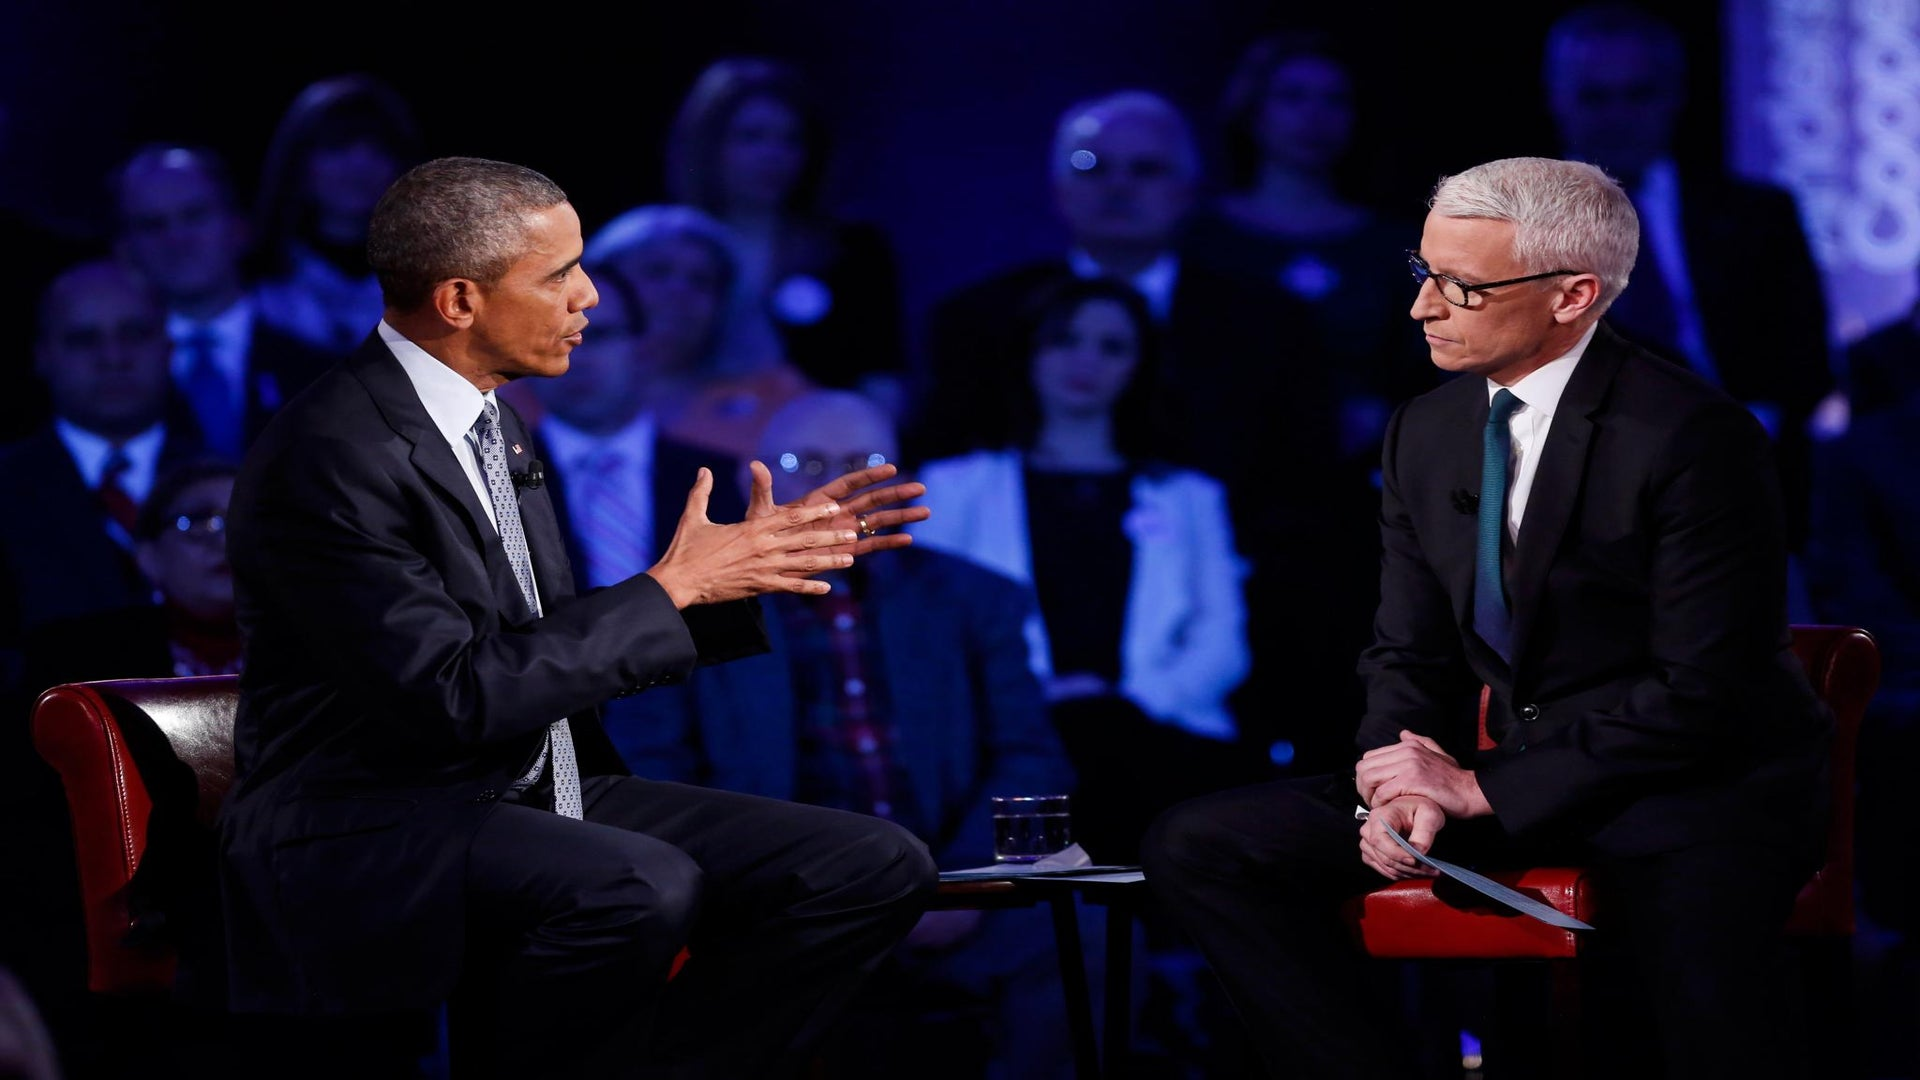 President Obama Dismisses Gun Control Conspiracy Theories, Says He Won't Seize All Firearms